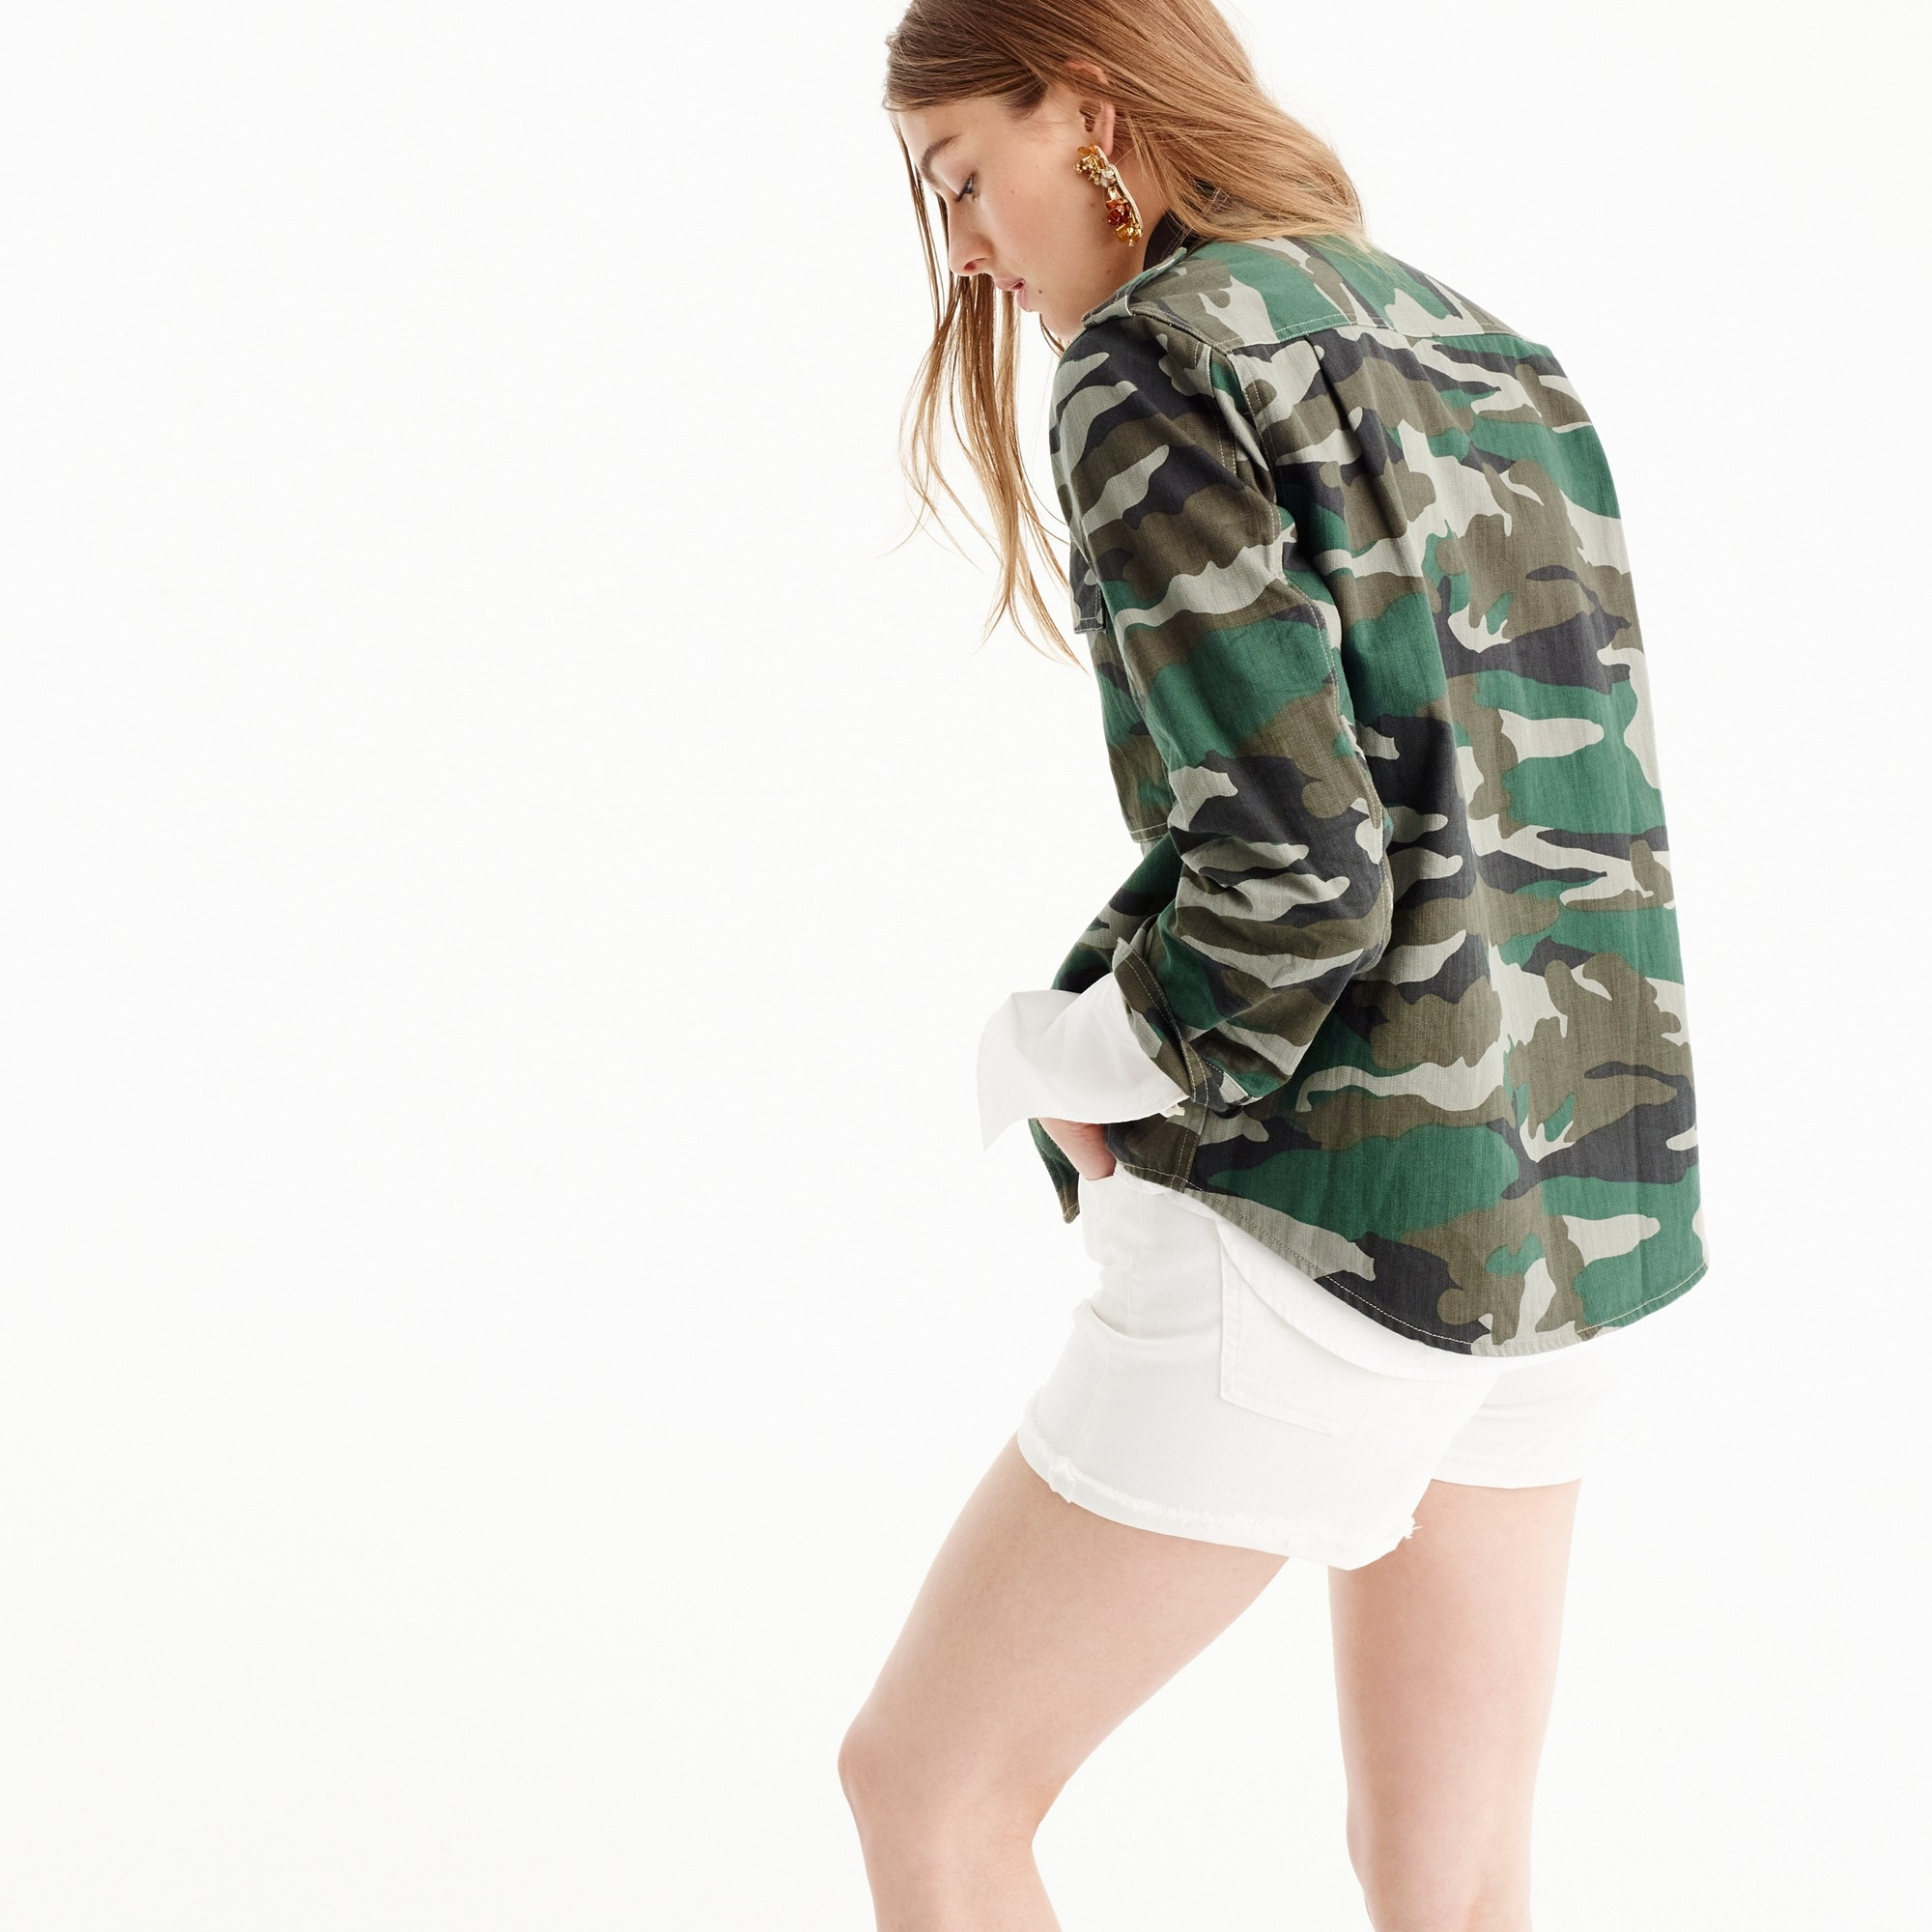 Image 4 for Camouflage utility shirt-jacket